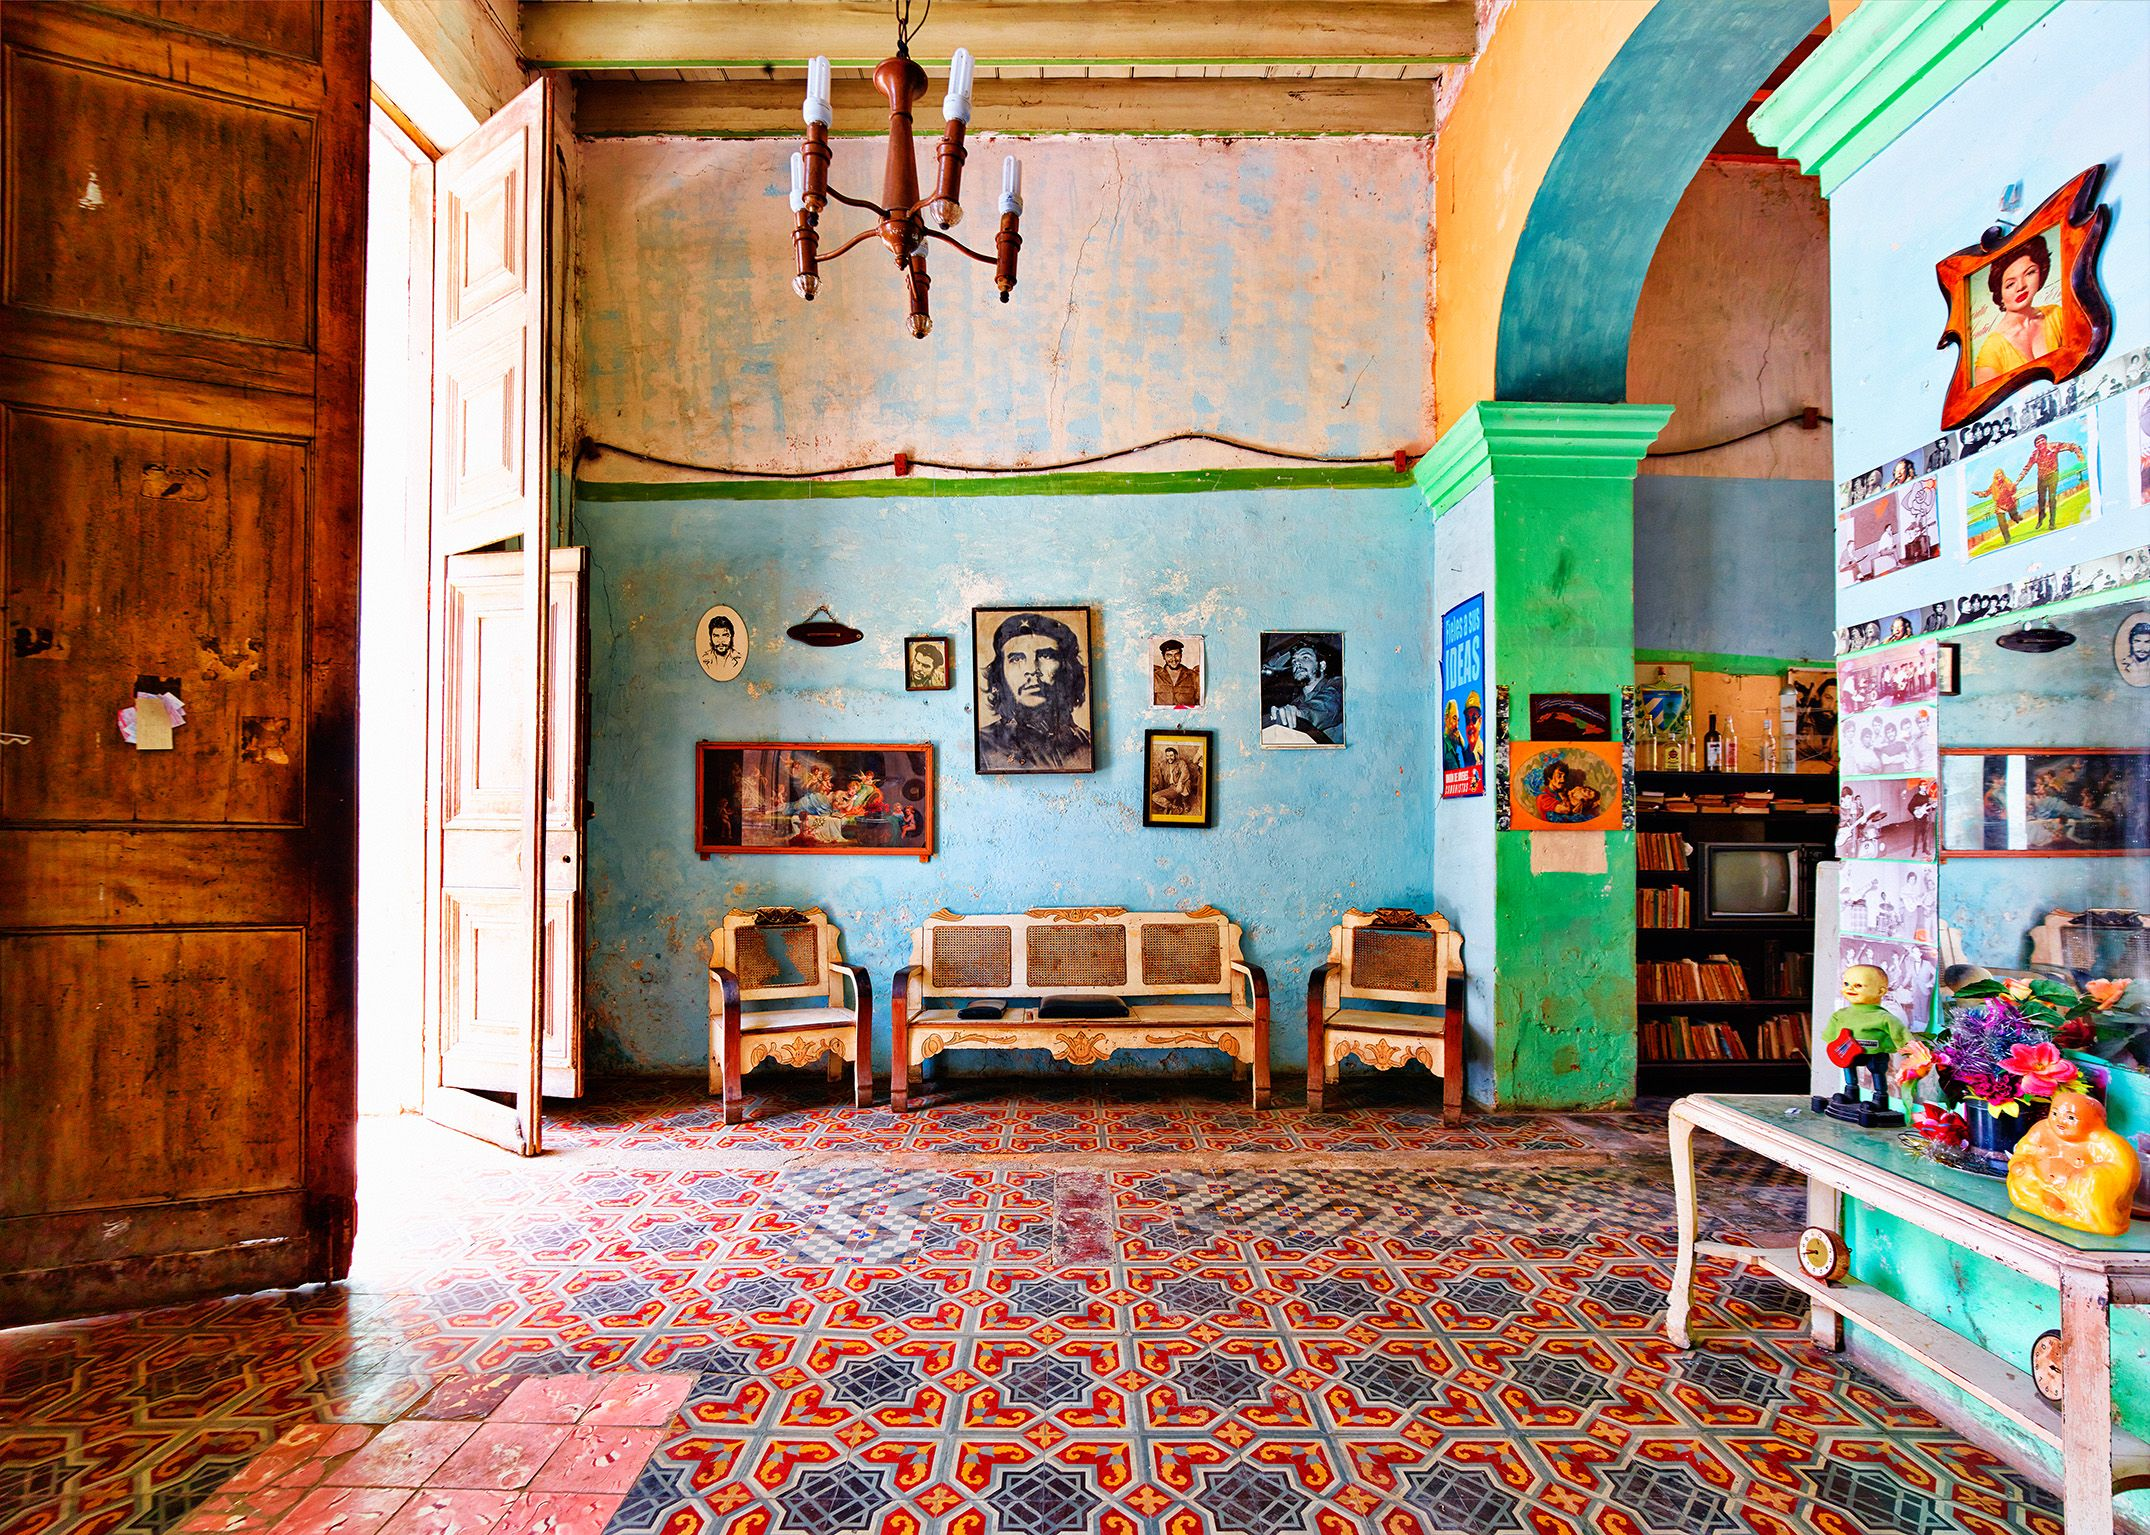 Werner Pawloks Cuba is curiously melancholy Though his interiors